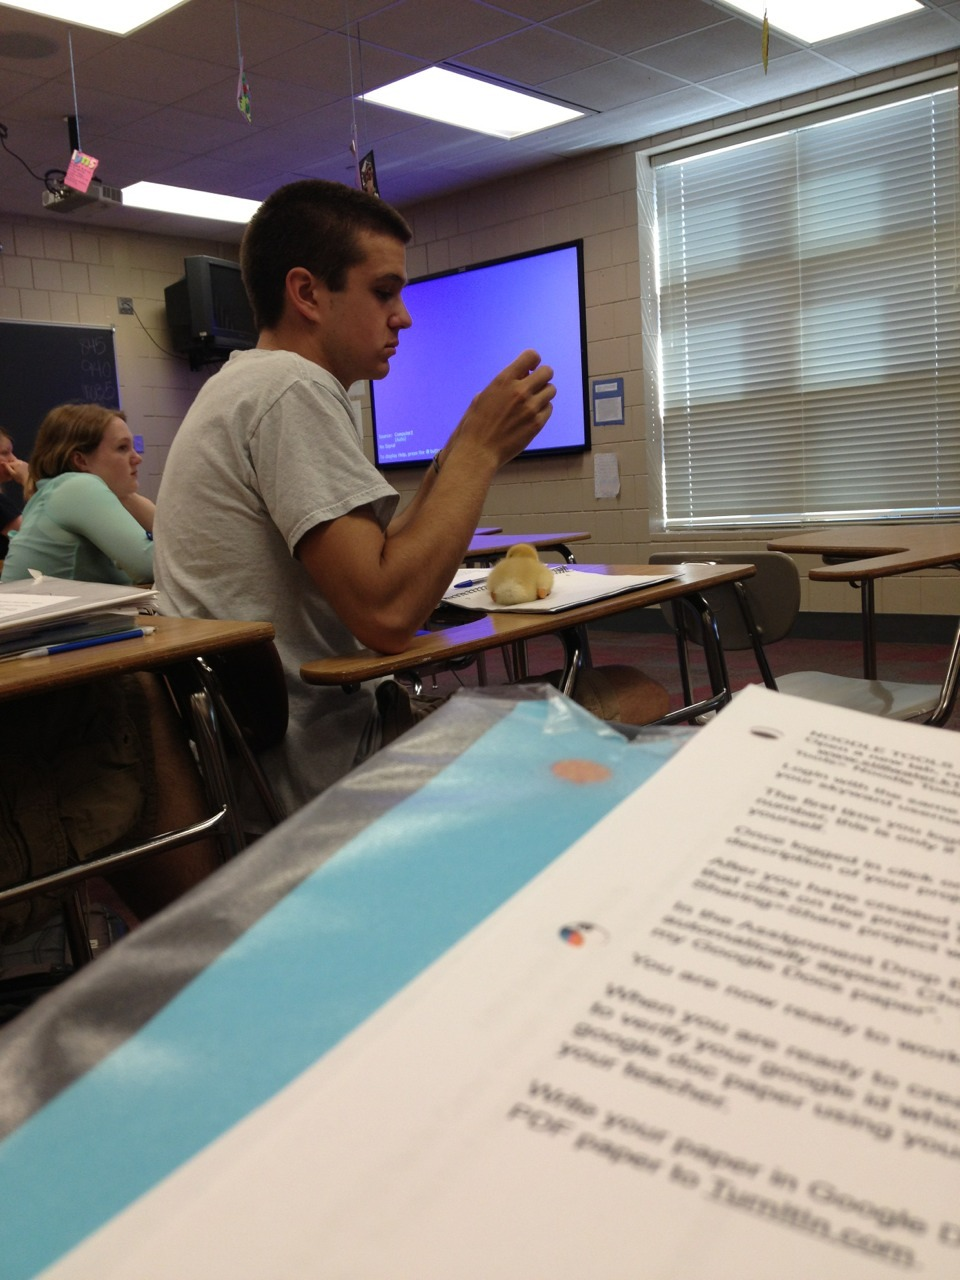 thesunisinmyeyes:  teenytigress:   SO THIS GUY IN MY ENGLISH IS DOING A PROJECT FOR BIO WHERE HE GETS A DUCKLING TO IMPRINT ON HIM SO HE JUST CARRIES IT AROUND WITH HIM TO ALL OF HIS CLASSES AND I SWEAR THIS DUCK IS THE MOST WELL BEHAVED FUCKING POULTRY IVE EVER SEEN IT JUST SITS ON HIS DESK QUIETLY AND SOMETIMES HE PUTS IT IN HIS POCKET AND IT JUST SLEEPS LIKE WOW YOU GO DUCKY   SO CUTE. I died.